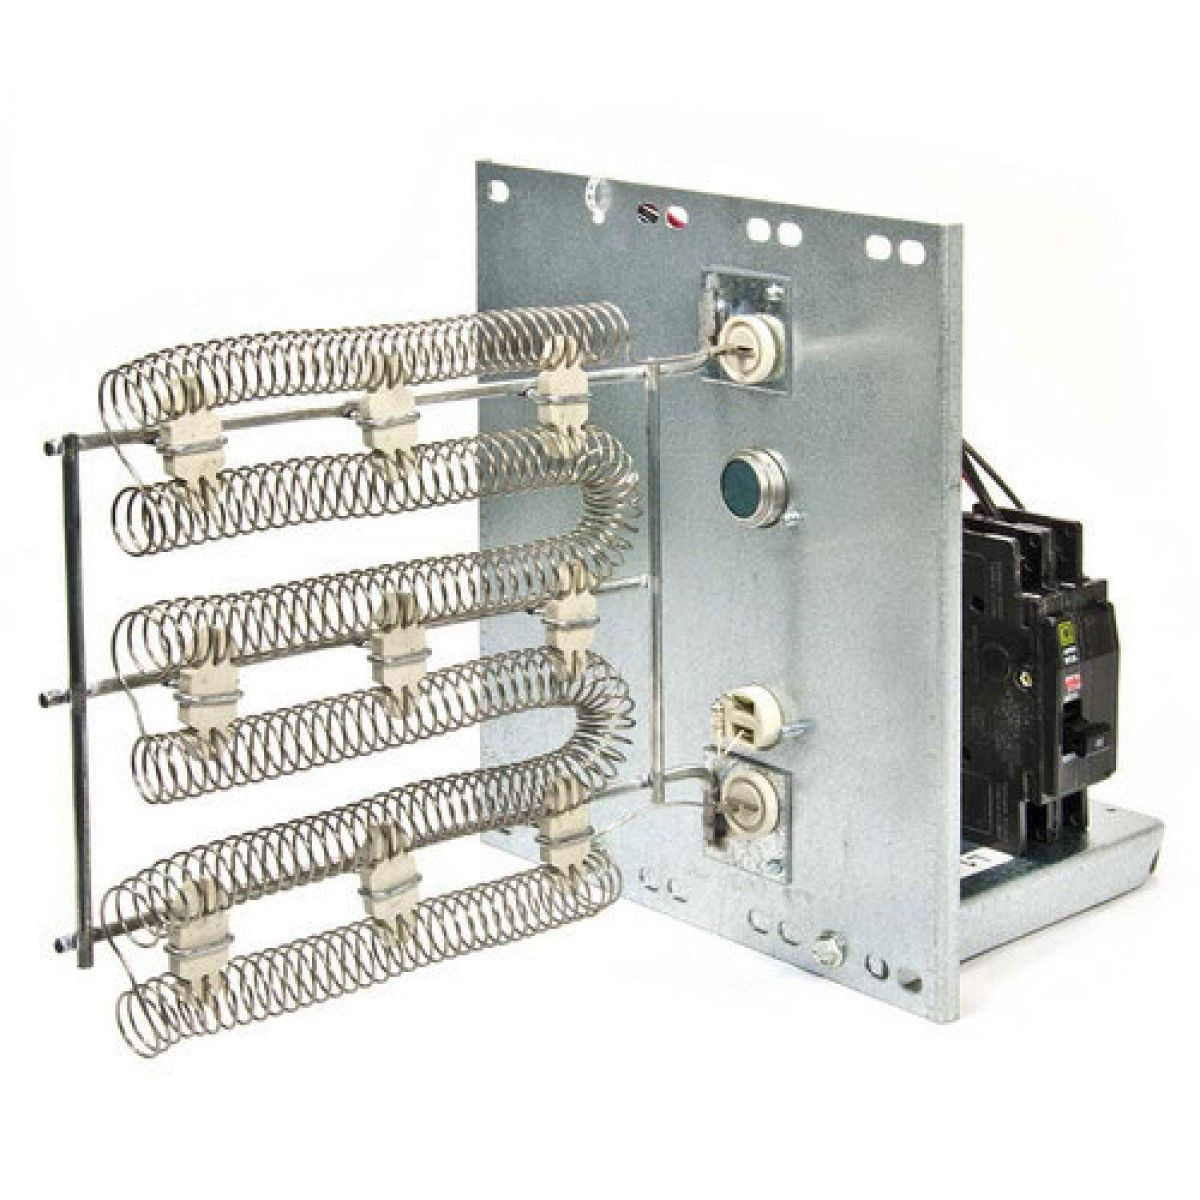 20kw Goodman Hksc20xc Electric Heat Kit W Breaker For Air Handlers Wiring Heater Diagram